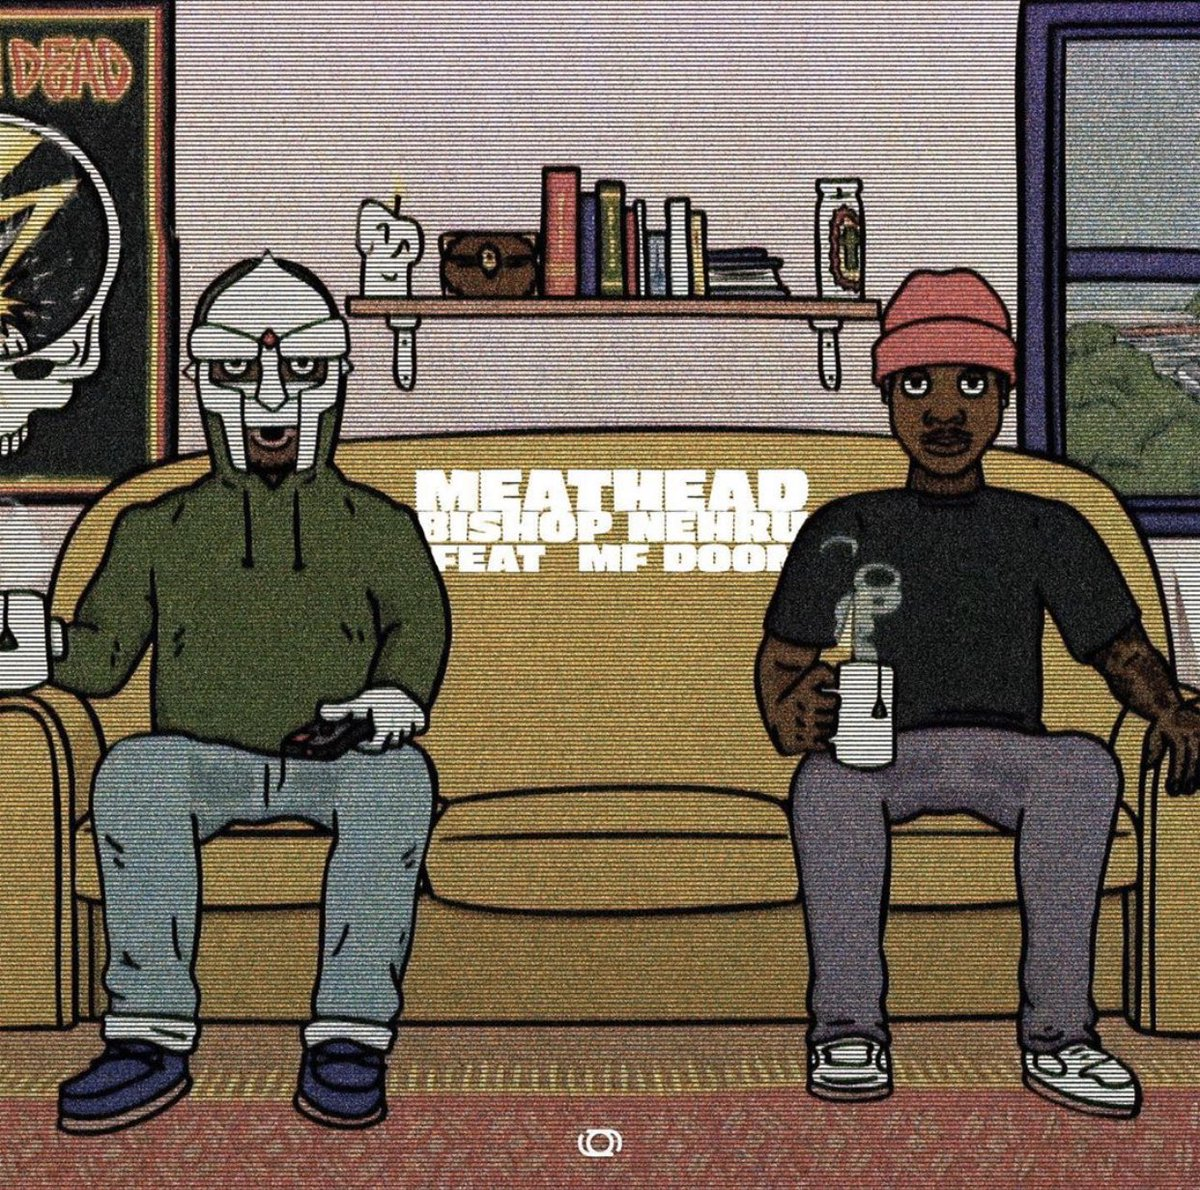 Replying to @BishopNehru: MEATHEAD feat MF DOOM out Friday. Presave it now at the link in my bio to hear it first on release.